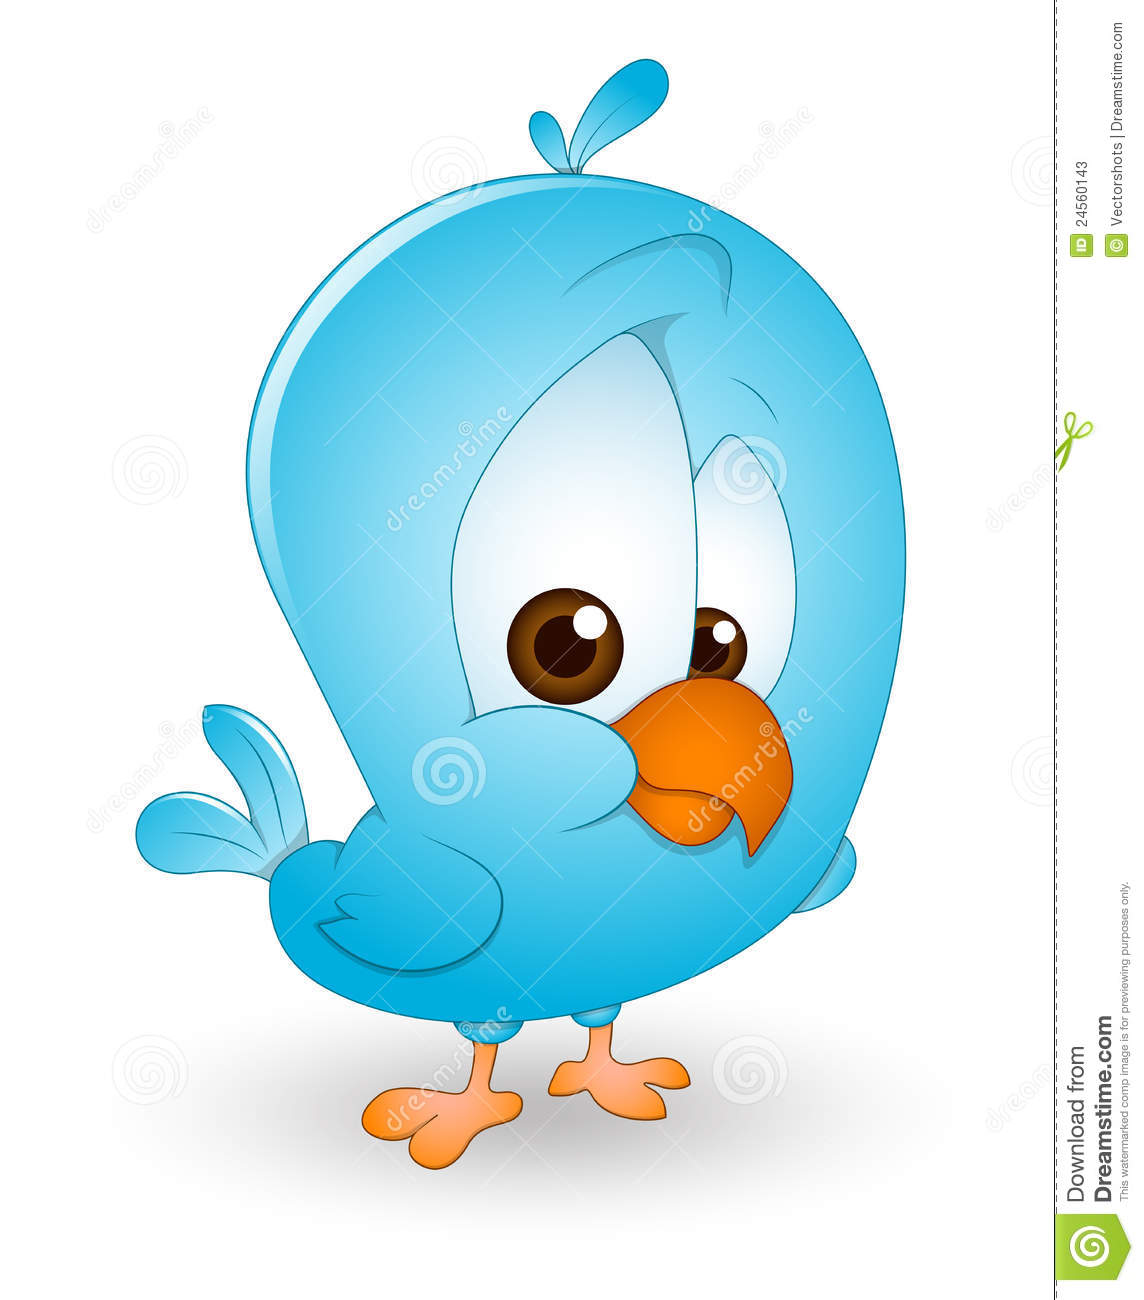 Cute Baby Bird stock vector. Illustration of animal, clipart.